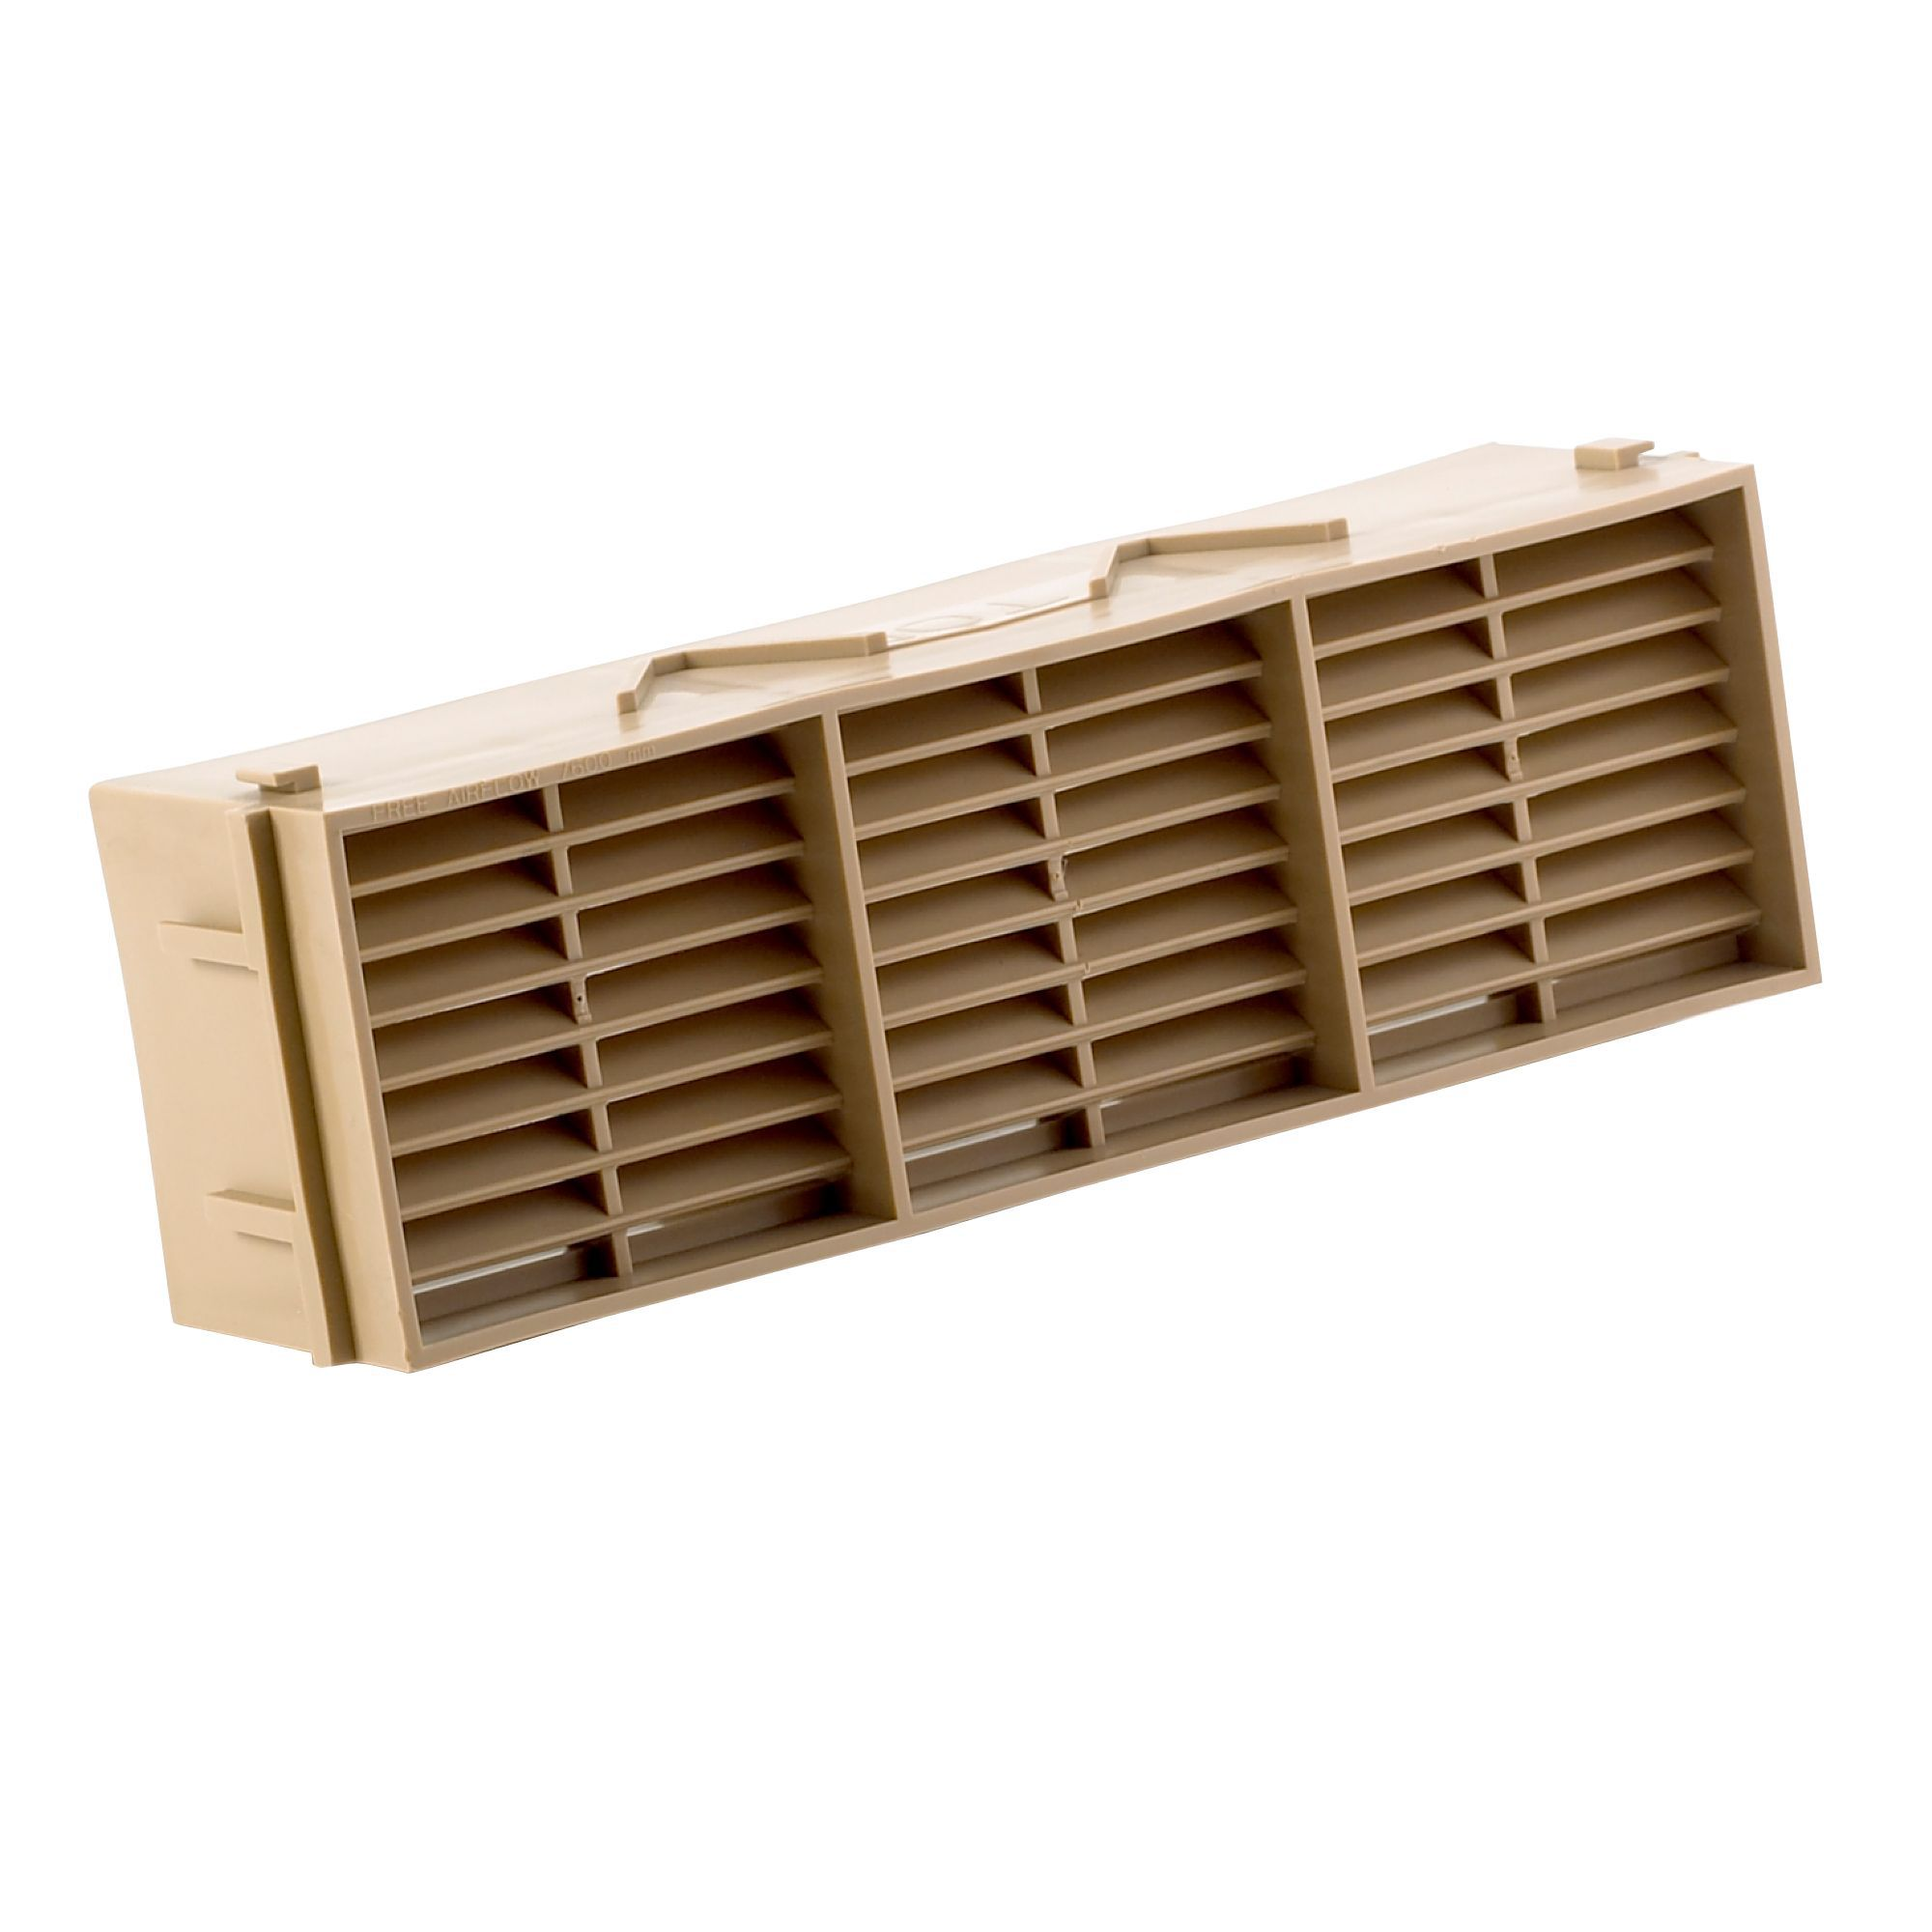 Manrose Beige Brick Vent (h)76mm (w)229mm  Departments. Patio Tables Designs. Patio Table Umbrella Hole Reducer. Best Price On Resin Patio Furniture. Patio Furniture In Charlotte North Carolina. Screened In Porch And Patio Ideas. Wicker Patio Furniture Nashville. Porch Swing At Target. Outdoor Furniture Sale Louisville Ky